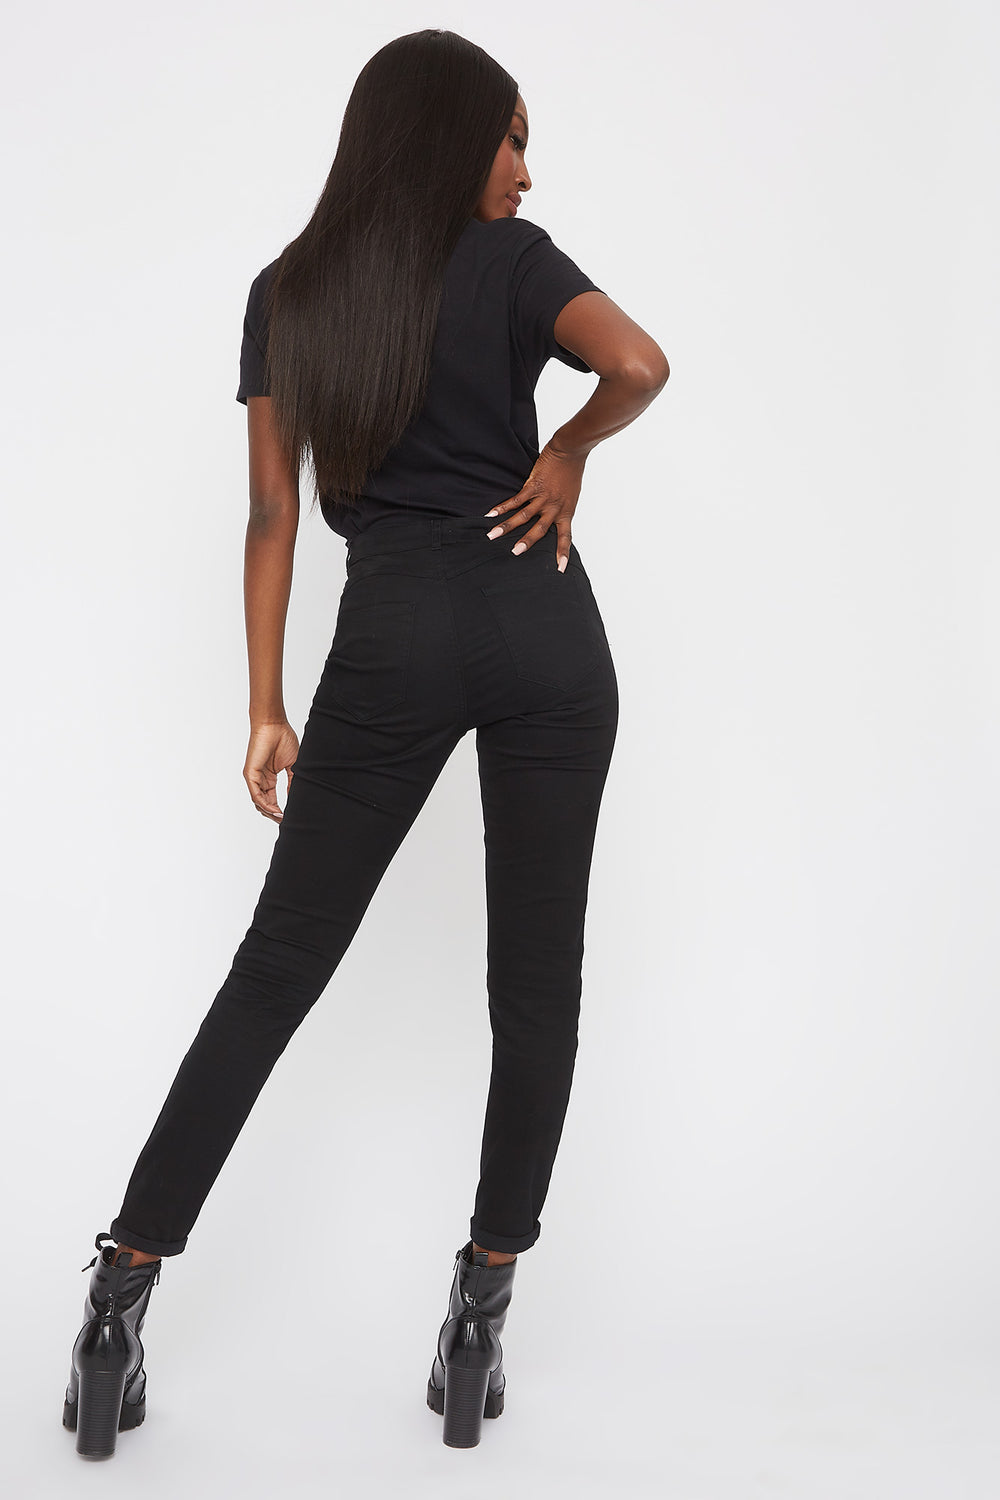 Mid-Rise Push-Up Skinny Jean Black